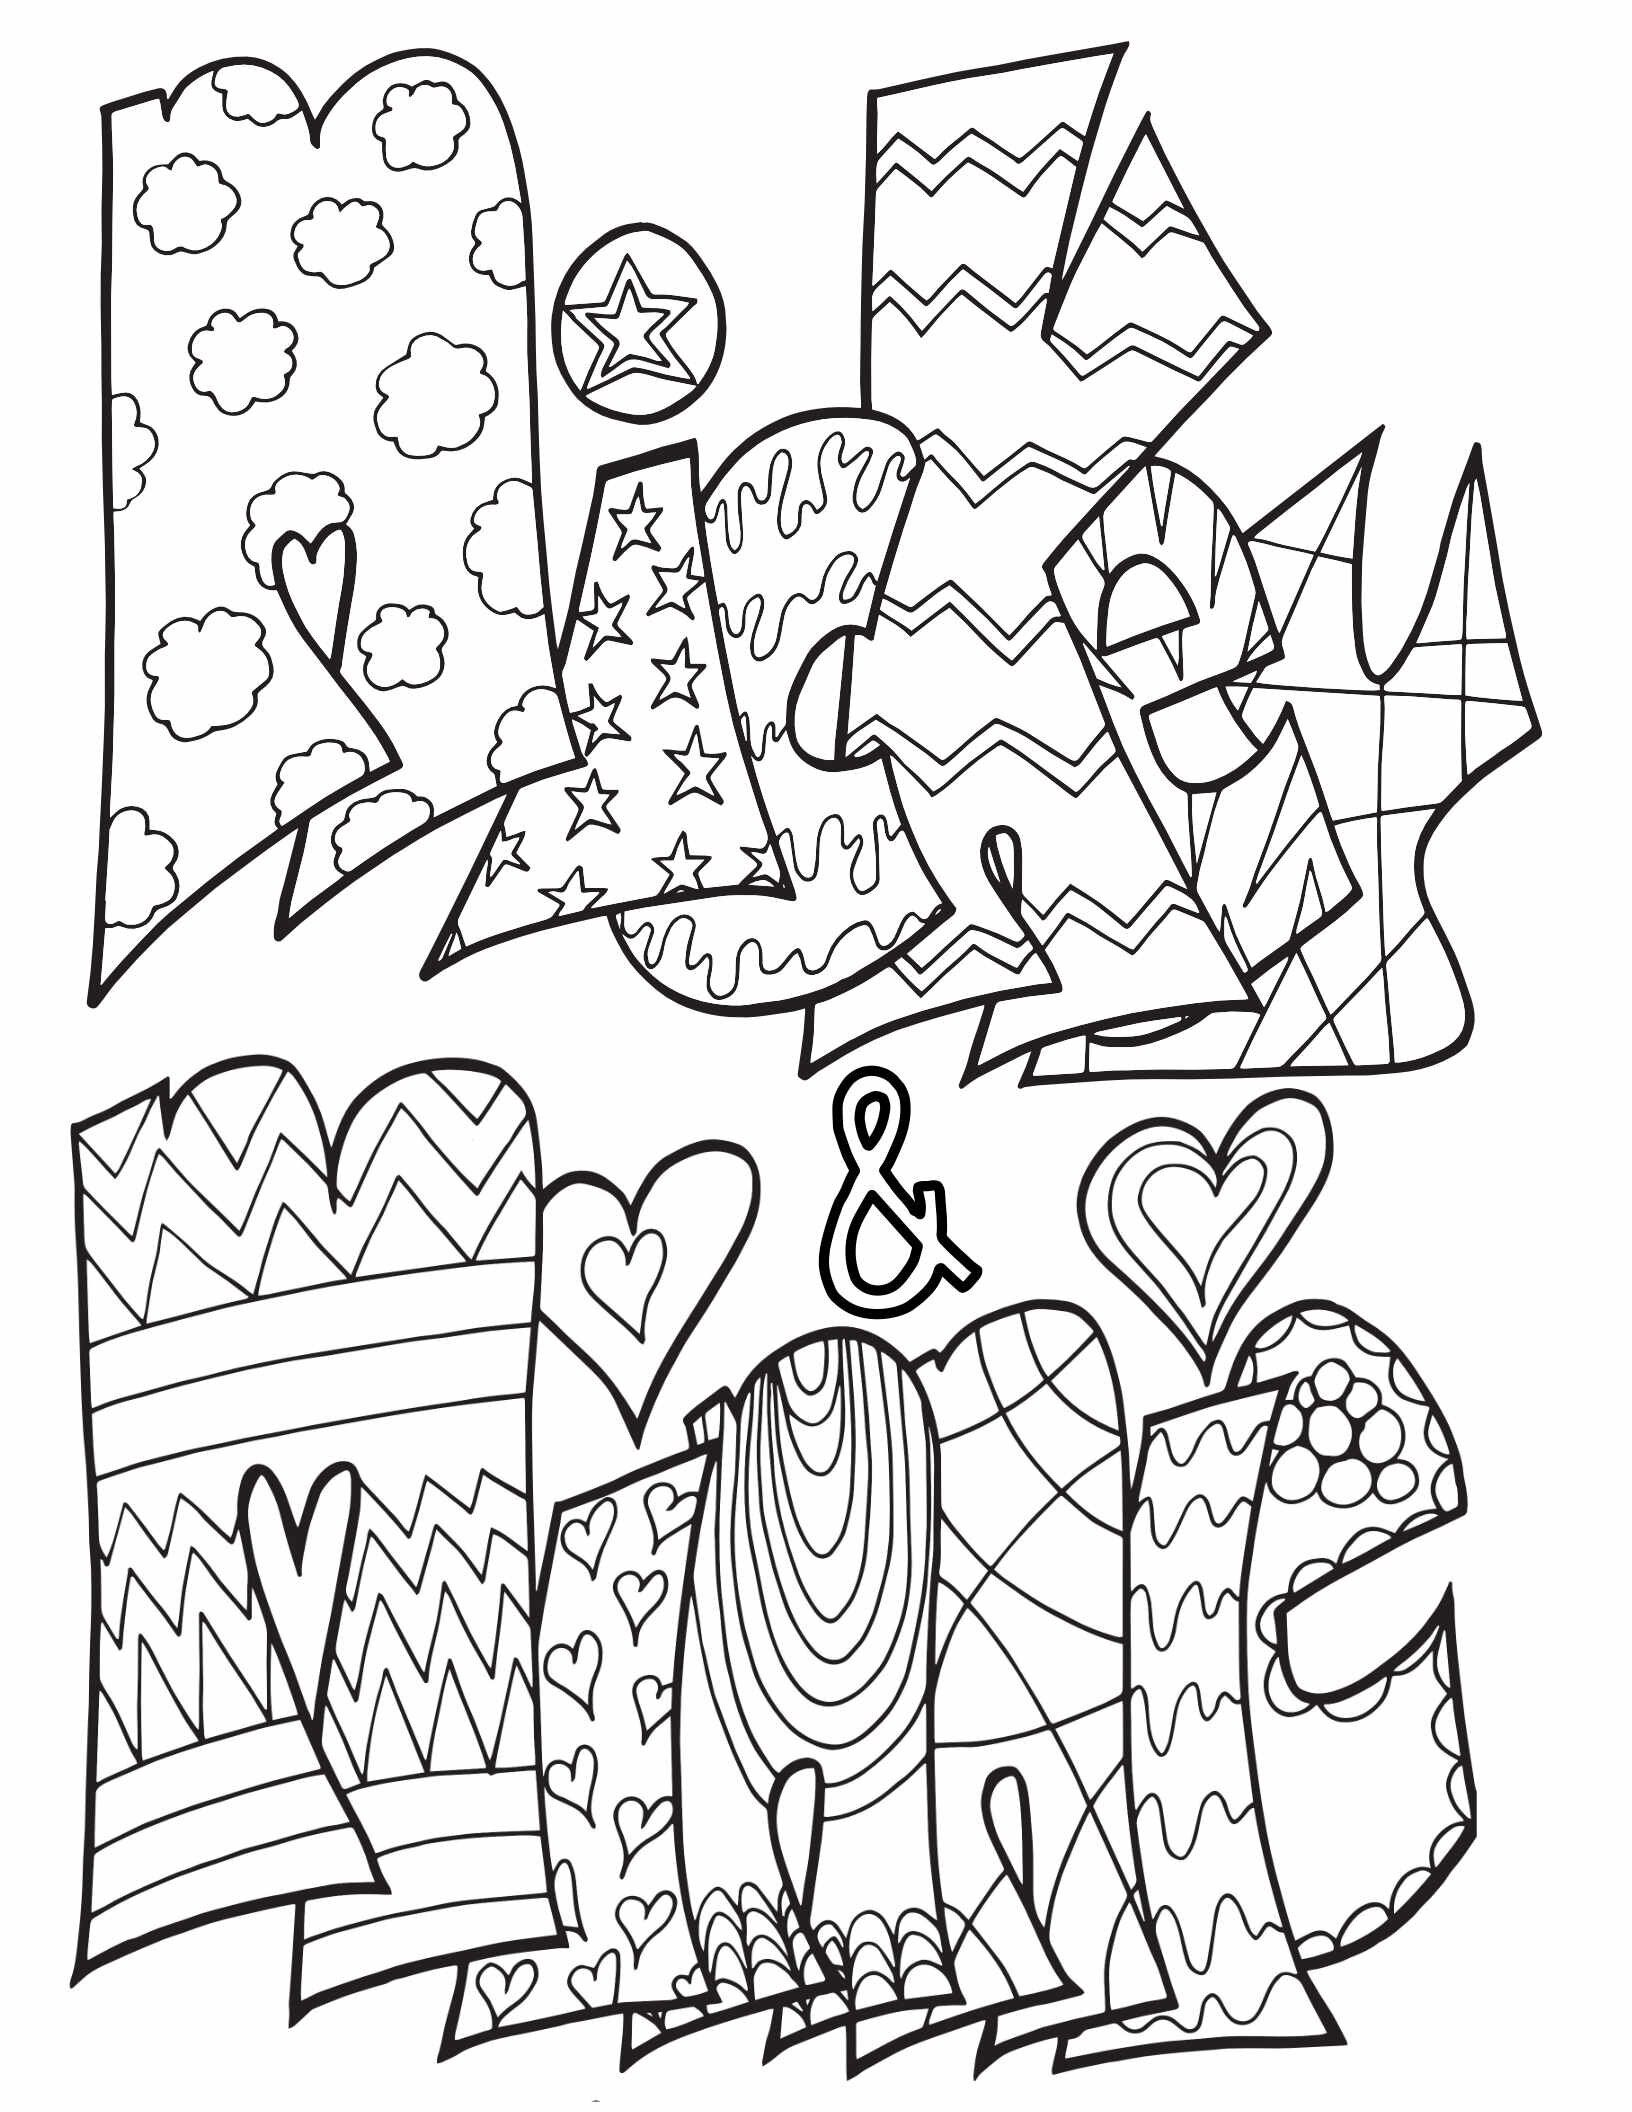 10 Favorite Couples As Coloring Pages Free Valentine S Day Printable Stevie Doodles Valentines Day Coloring Page Disney Coloring Pages Coloring Pages